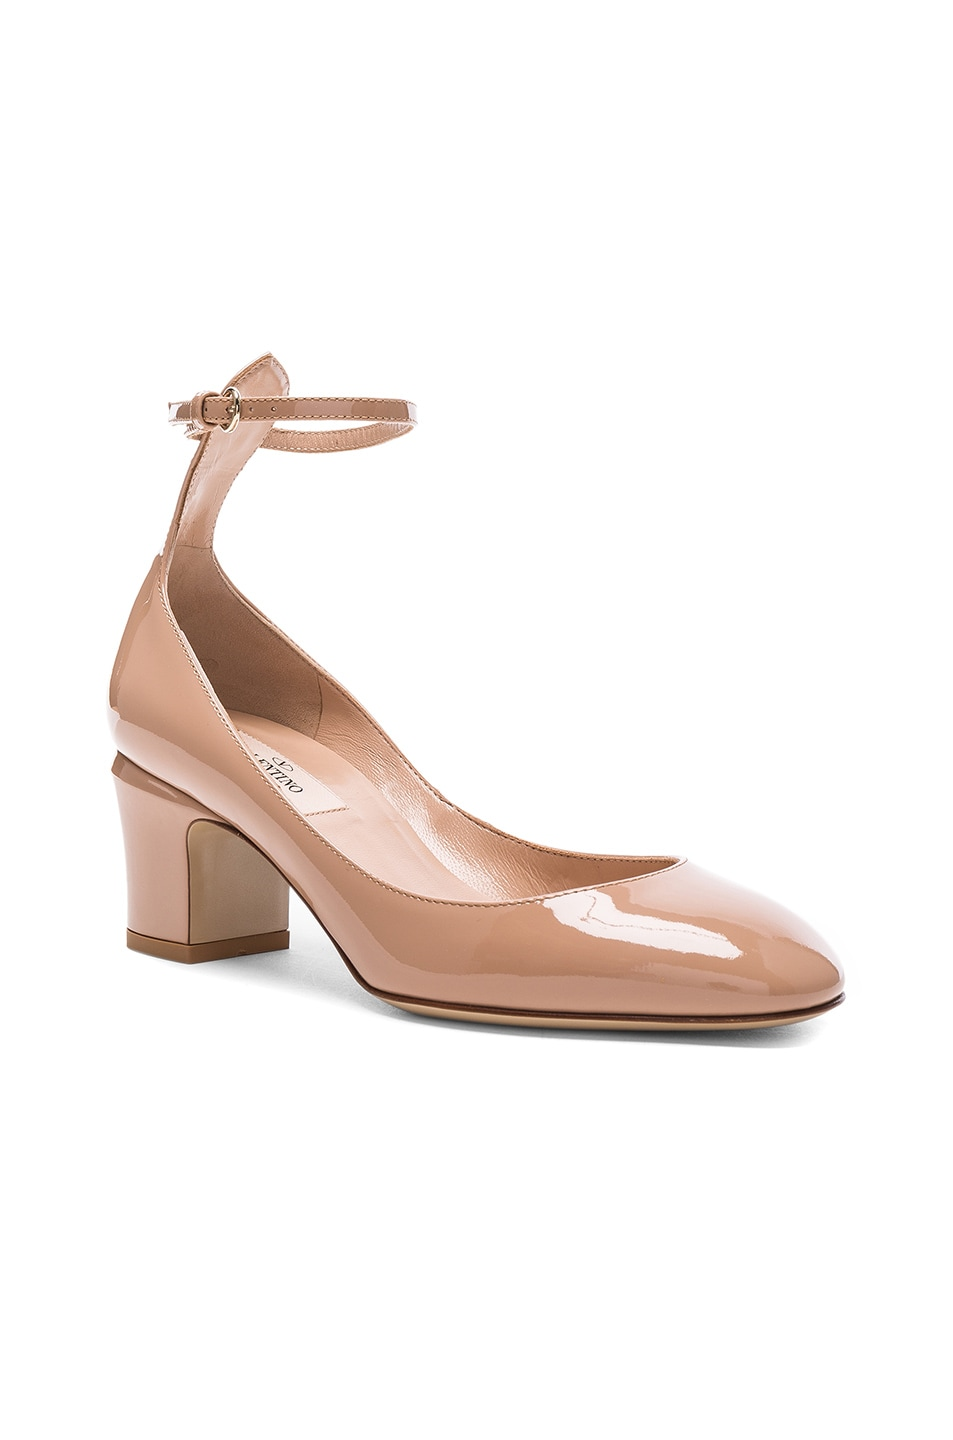 Image 2 of Valentino Patent Leather Tan-Go Pumps in Soft Noisette